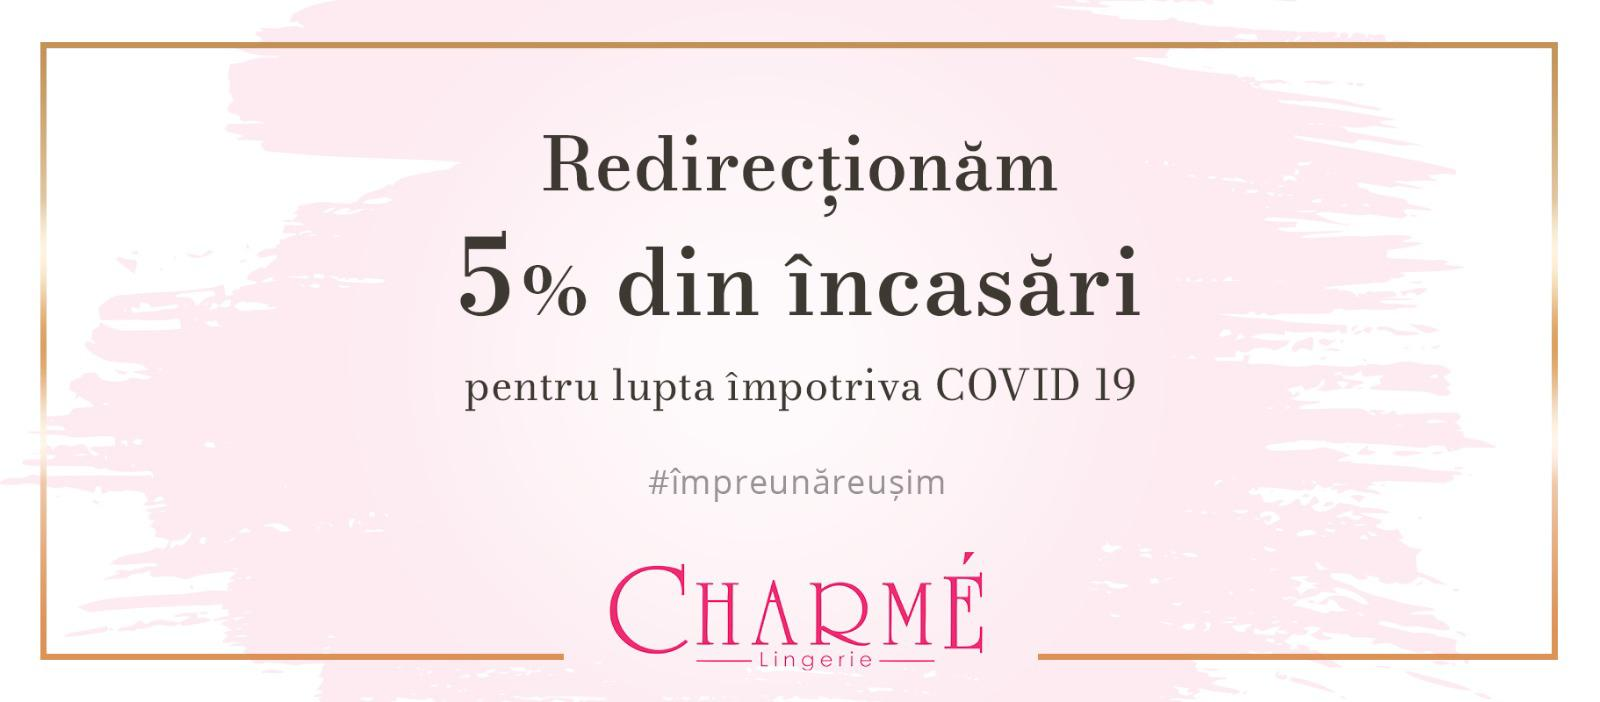 Redirectionam 5%